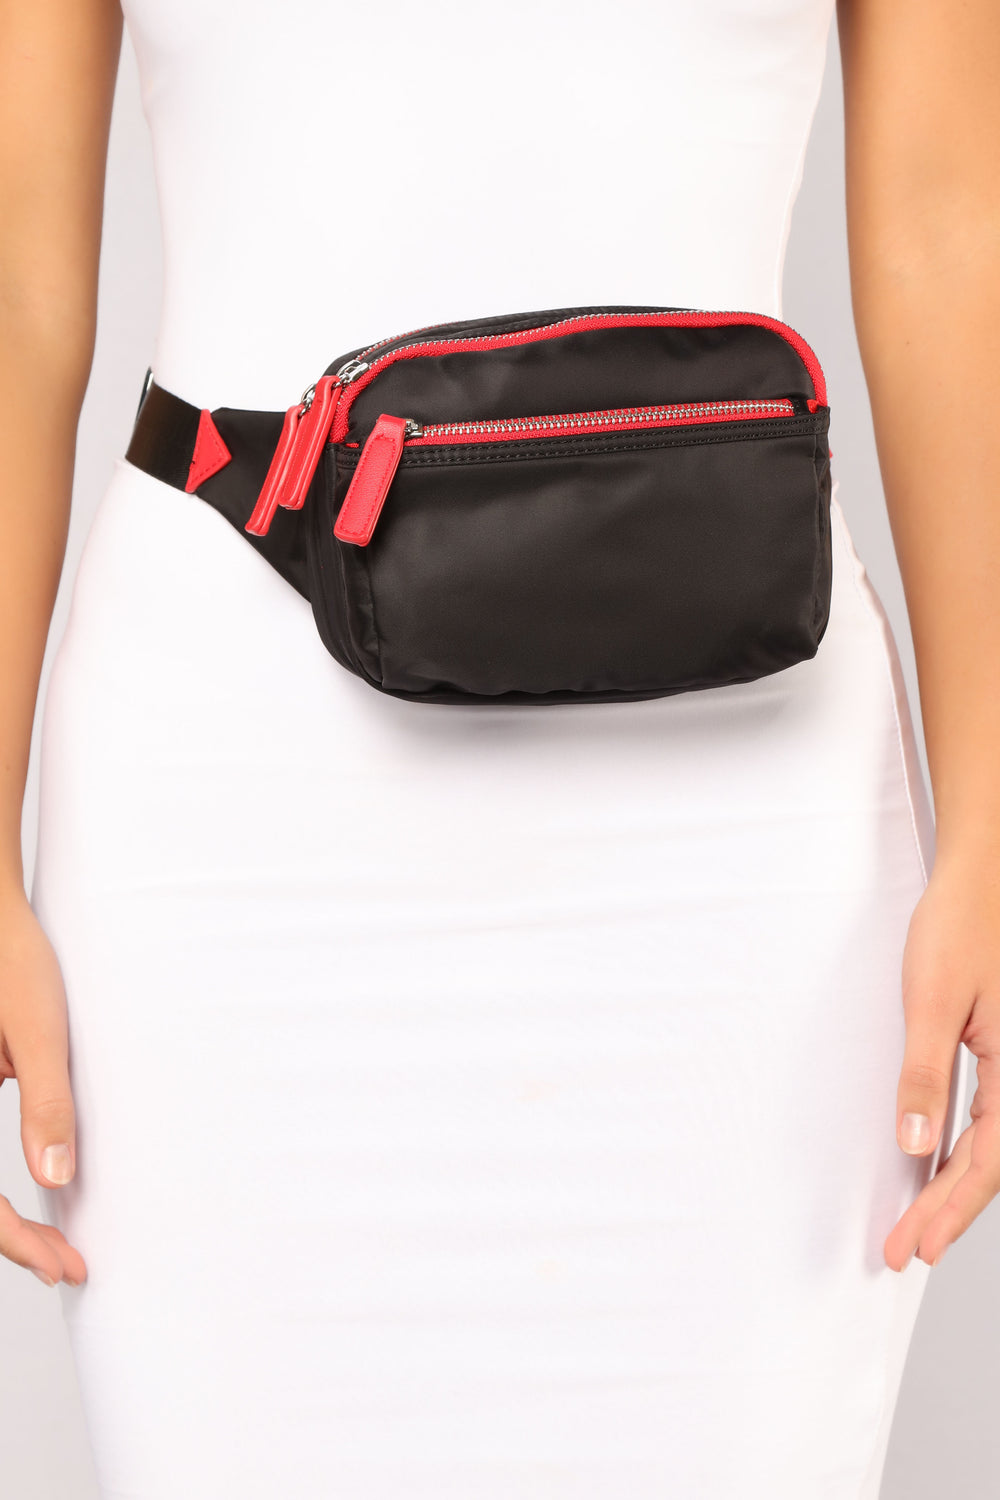 Nylon To A Better Place Fanny Pack - Black